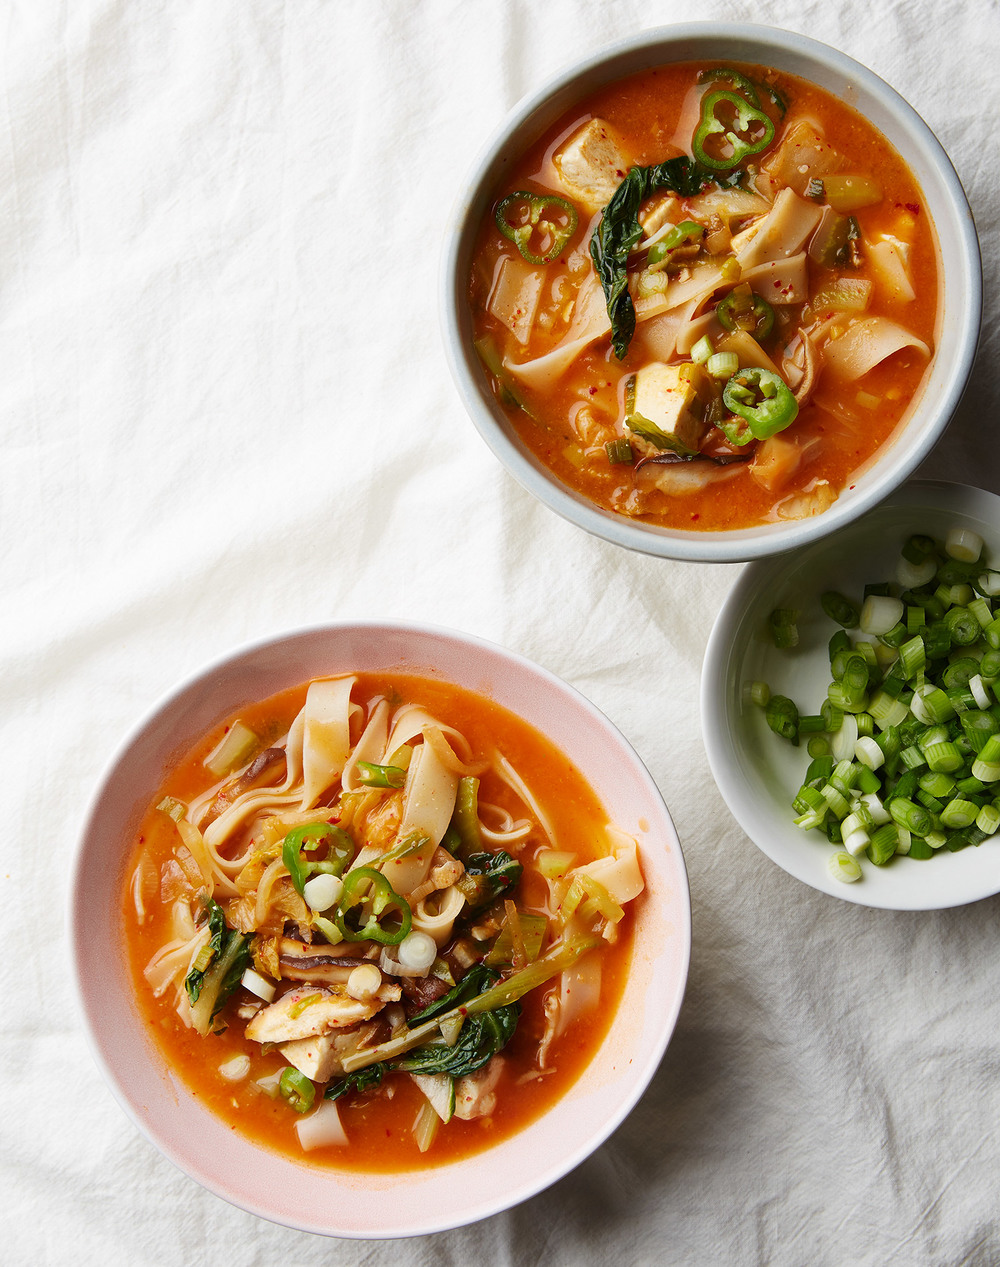 kimchi stew with tofu and noodles